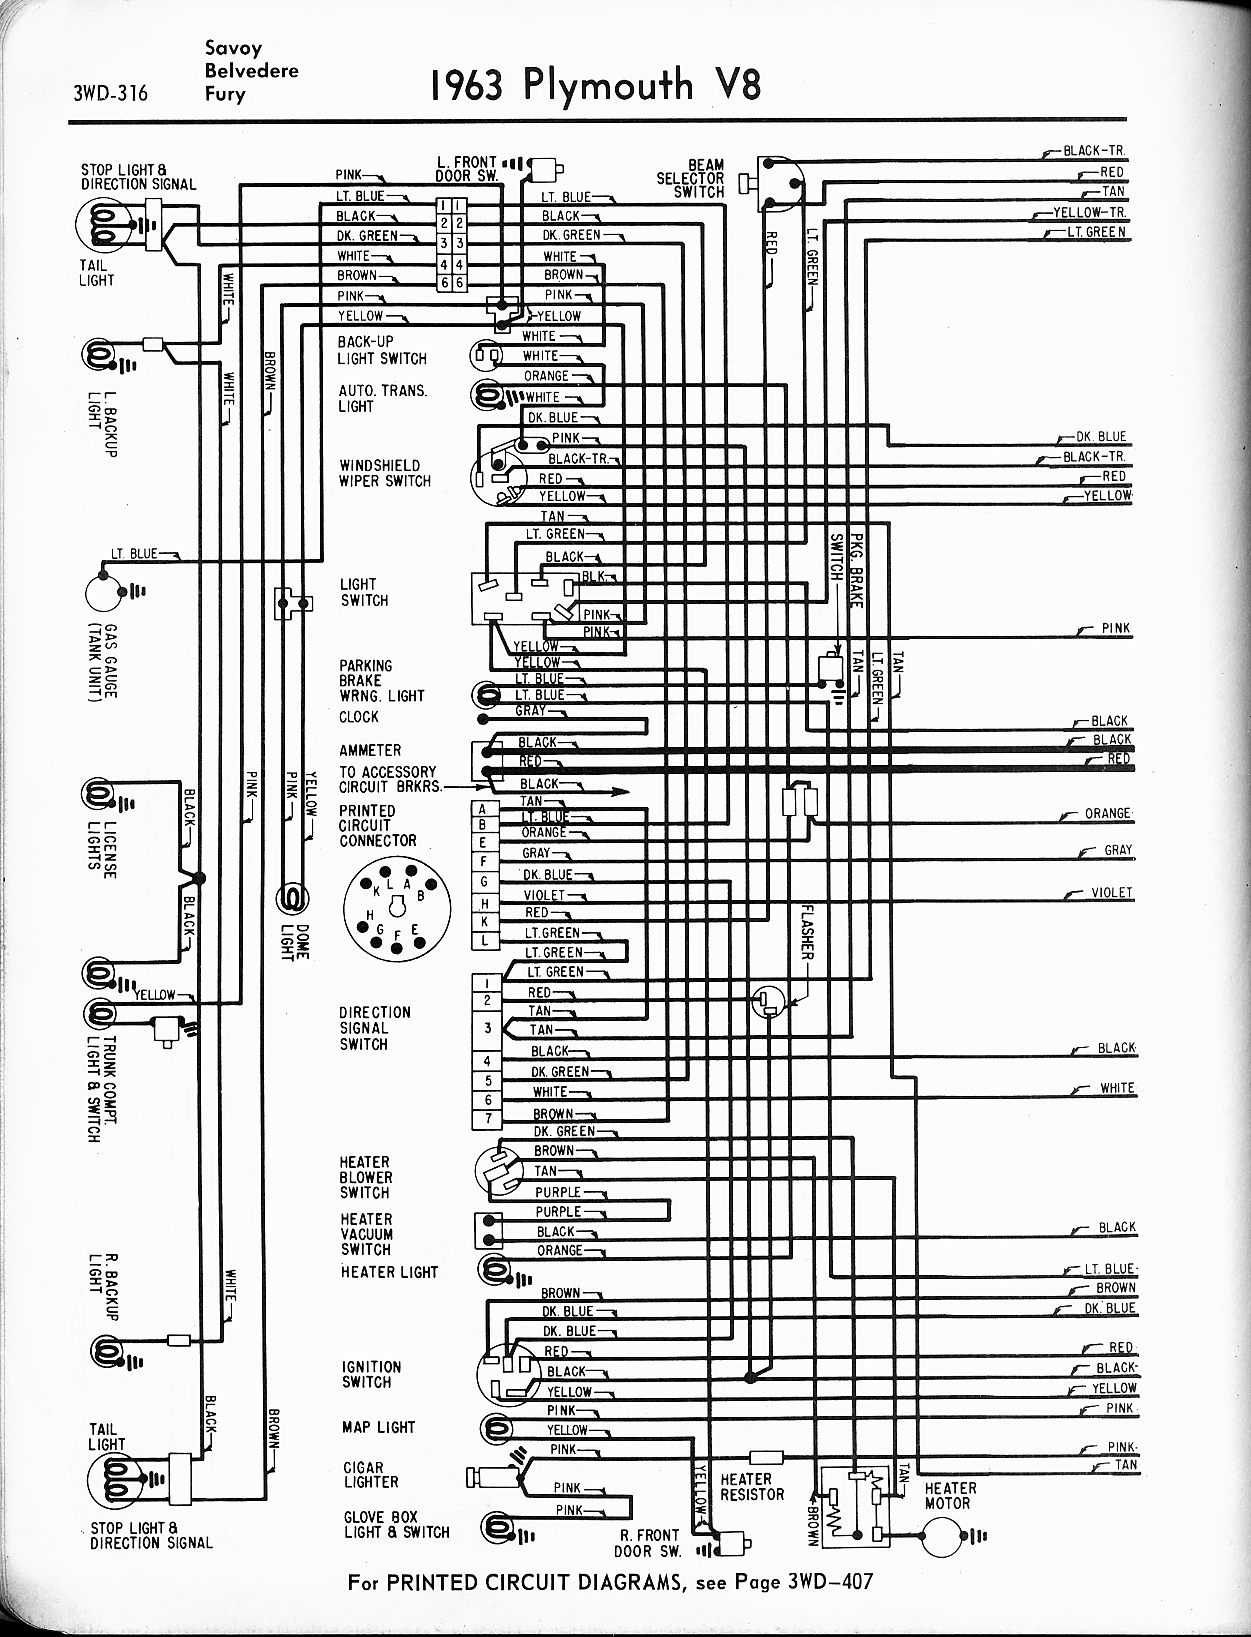 MWire5765 316 3800 series 2 wiring diagram gm ecu pinout \u2022 wiring diagrams j  at webbmarketing.co